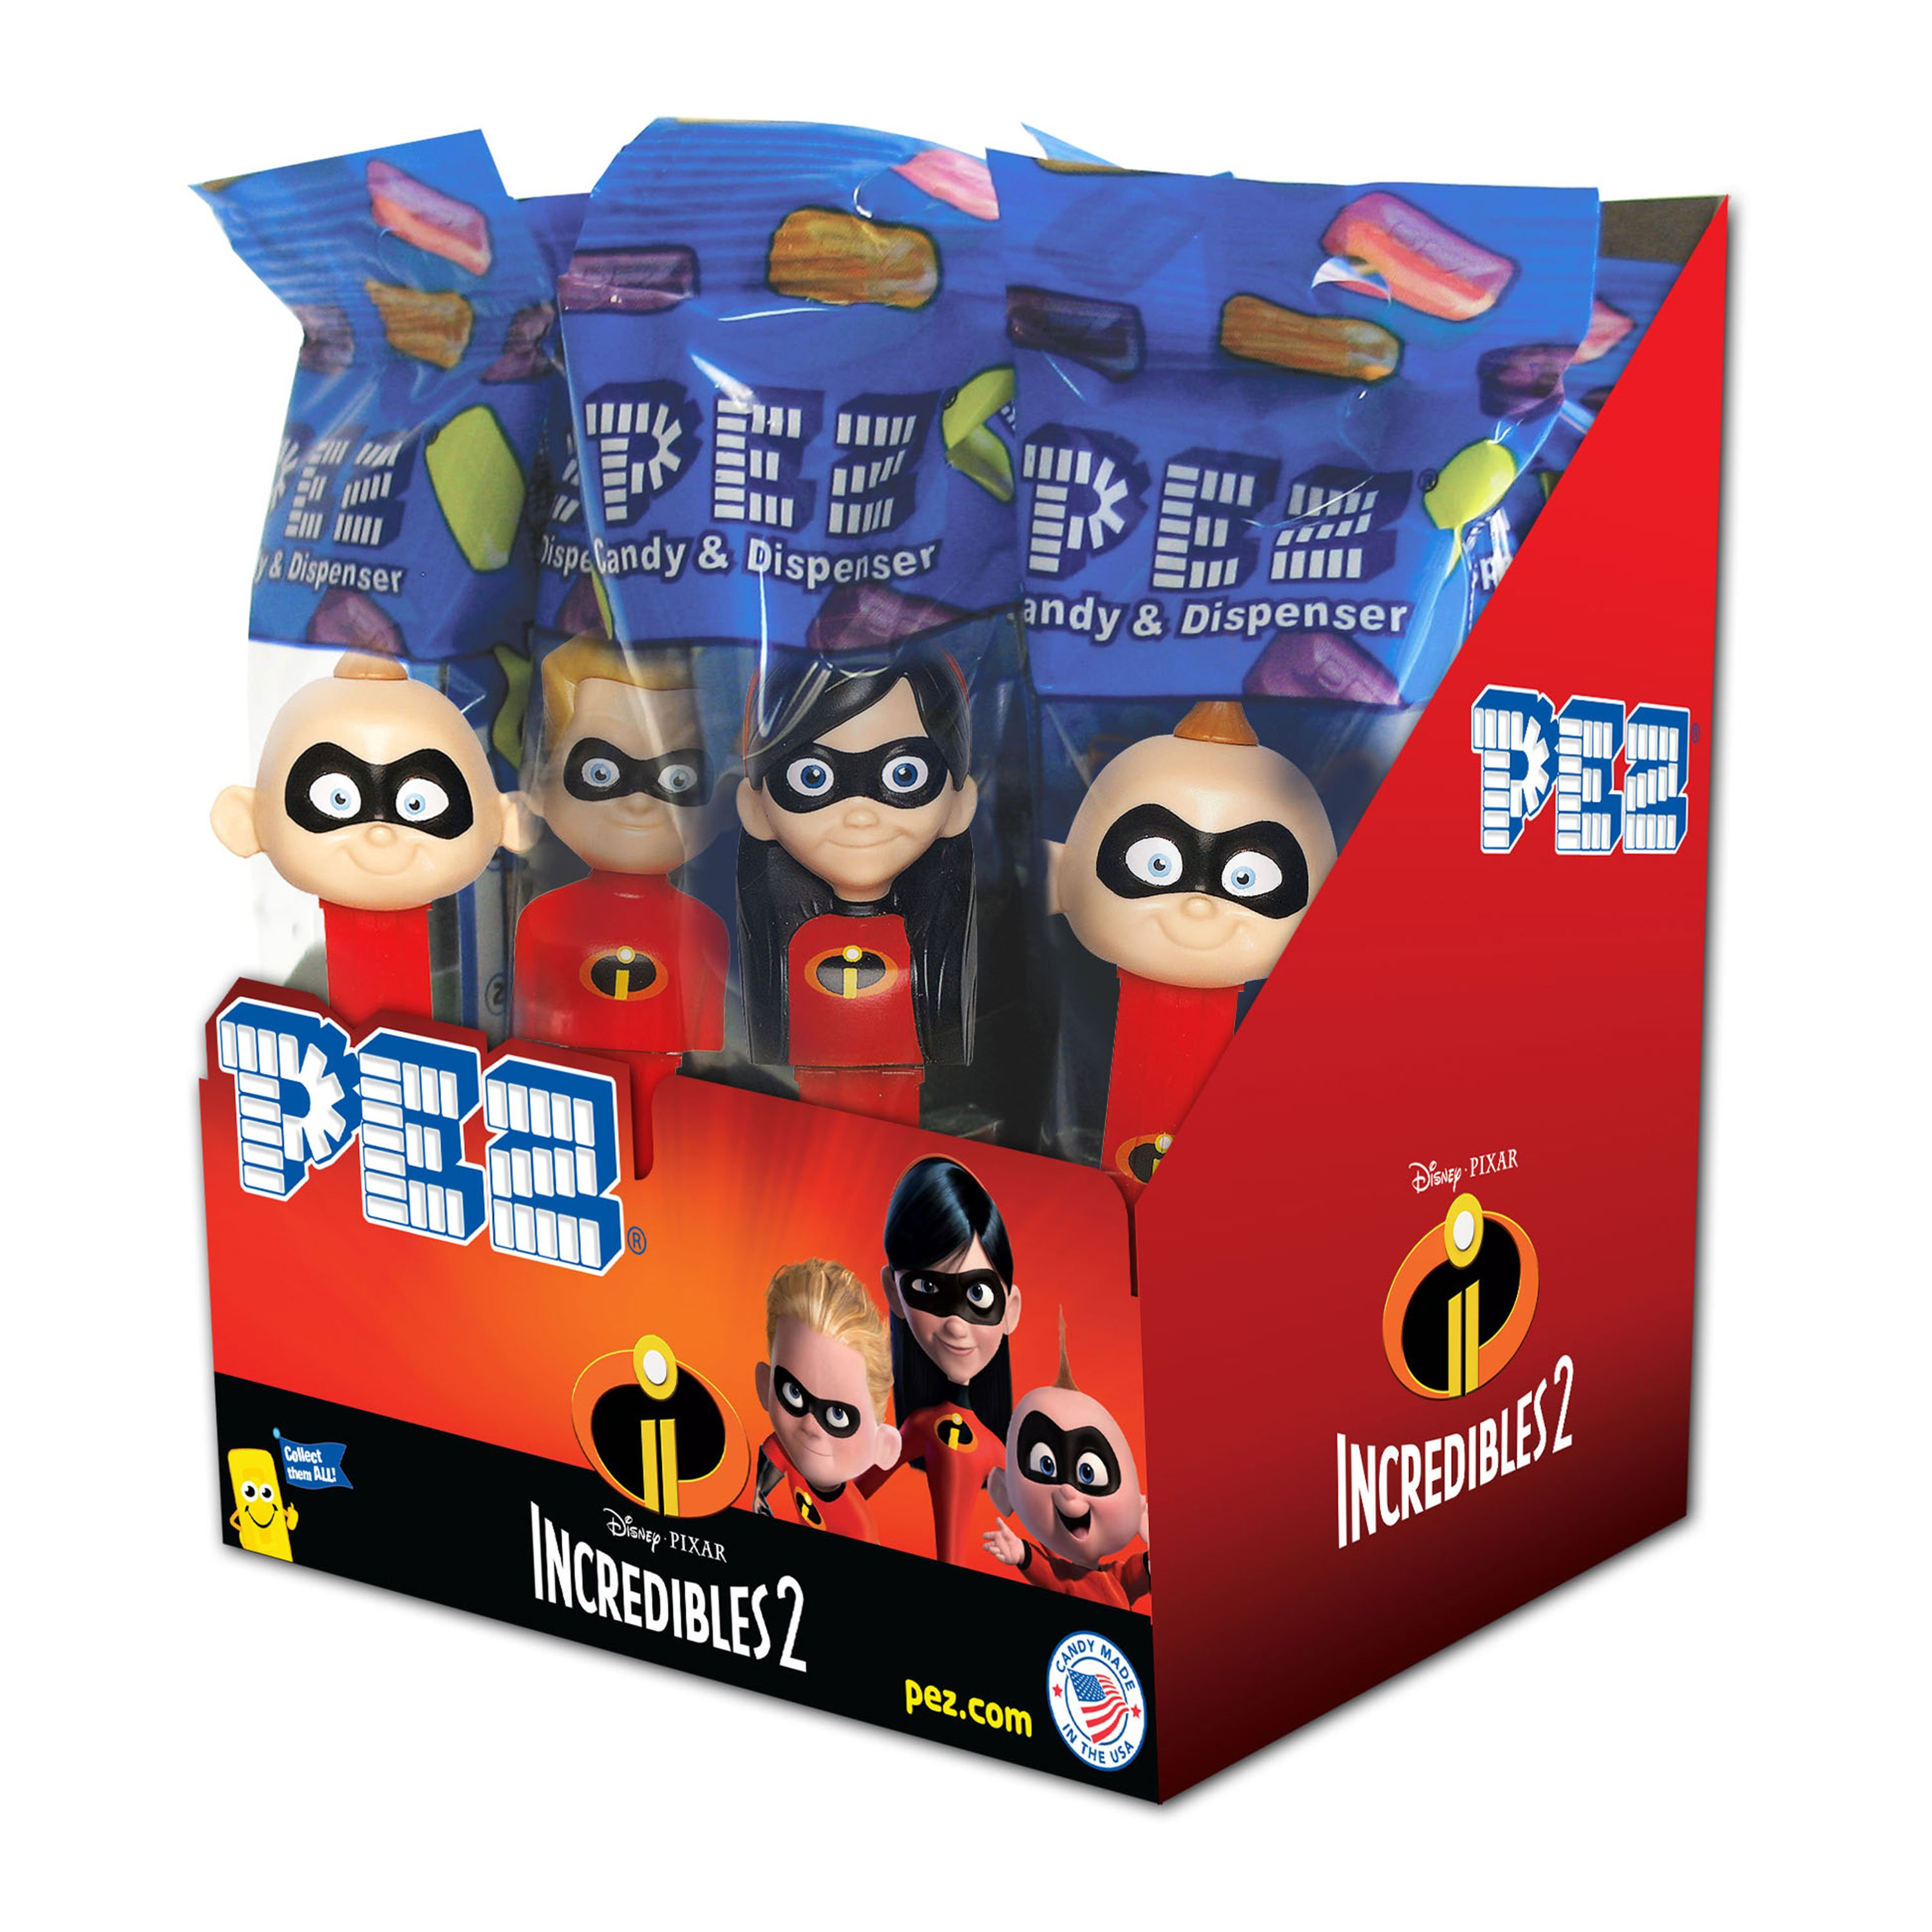 PEZ Candy Incredibles II Assortment, candy dispenser plus 2 rolls of assorted fruit candy, box of 12